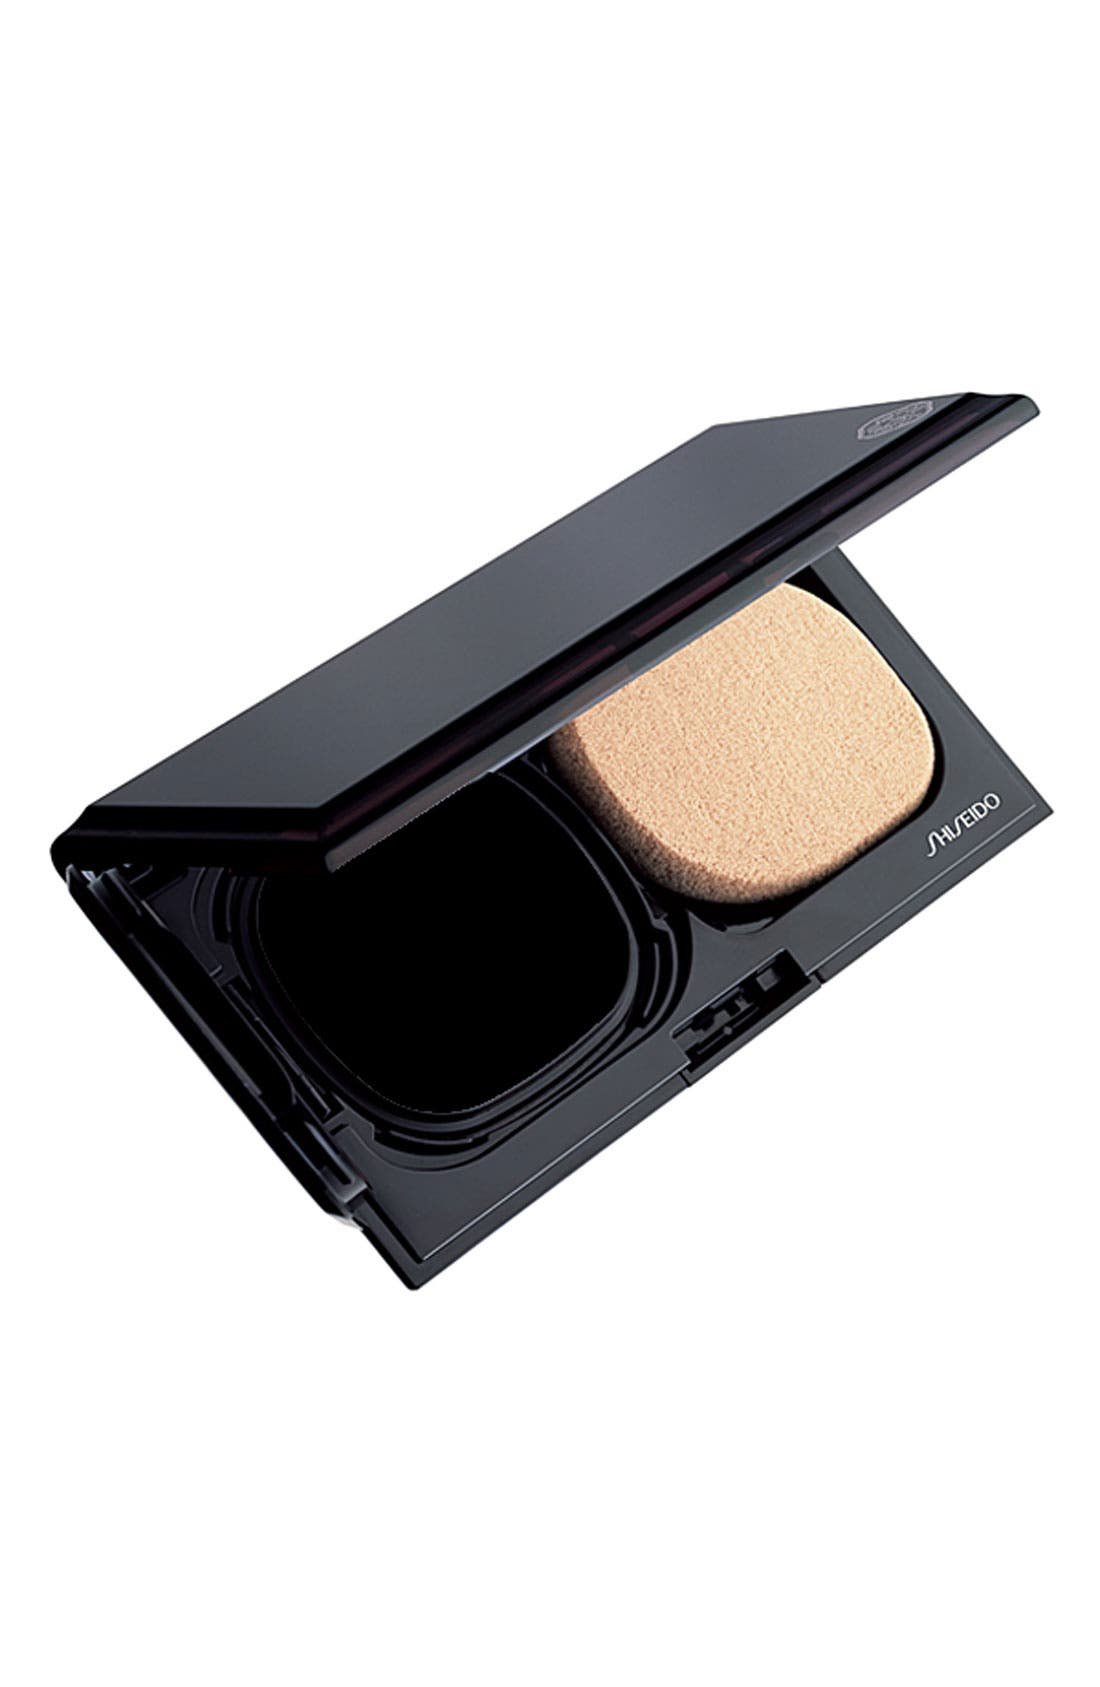 SHISEIDO The Makeup Advanced Hydro-Liquid Compact SPF 15 Refill, Main, color, I40 NATURAL FAIR IVORY